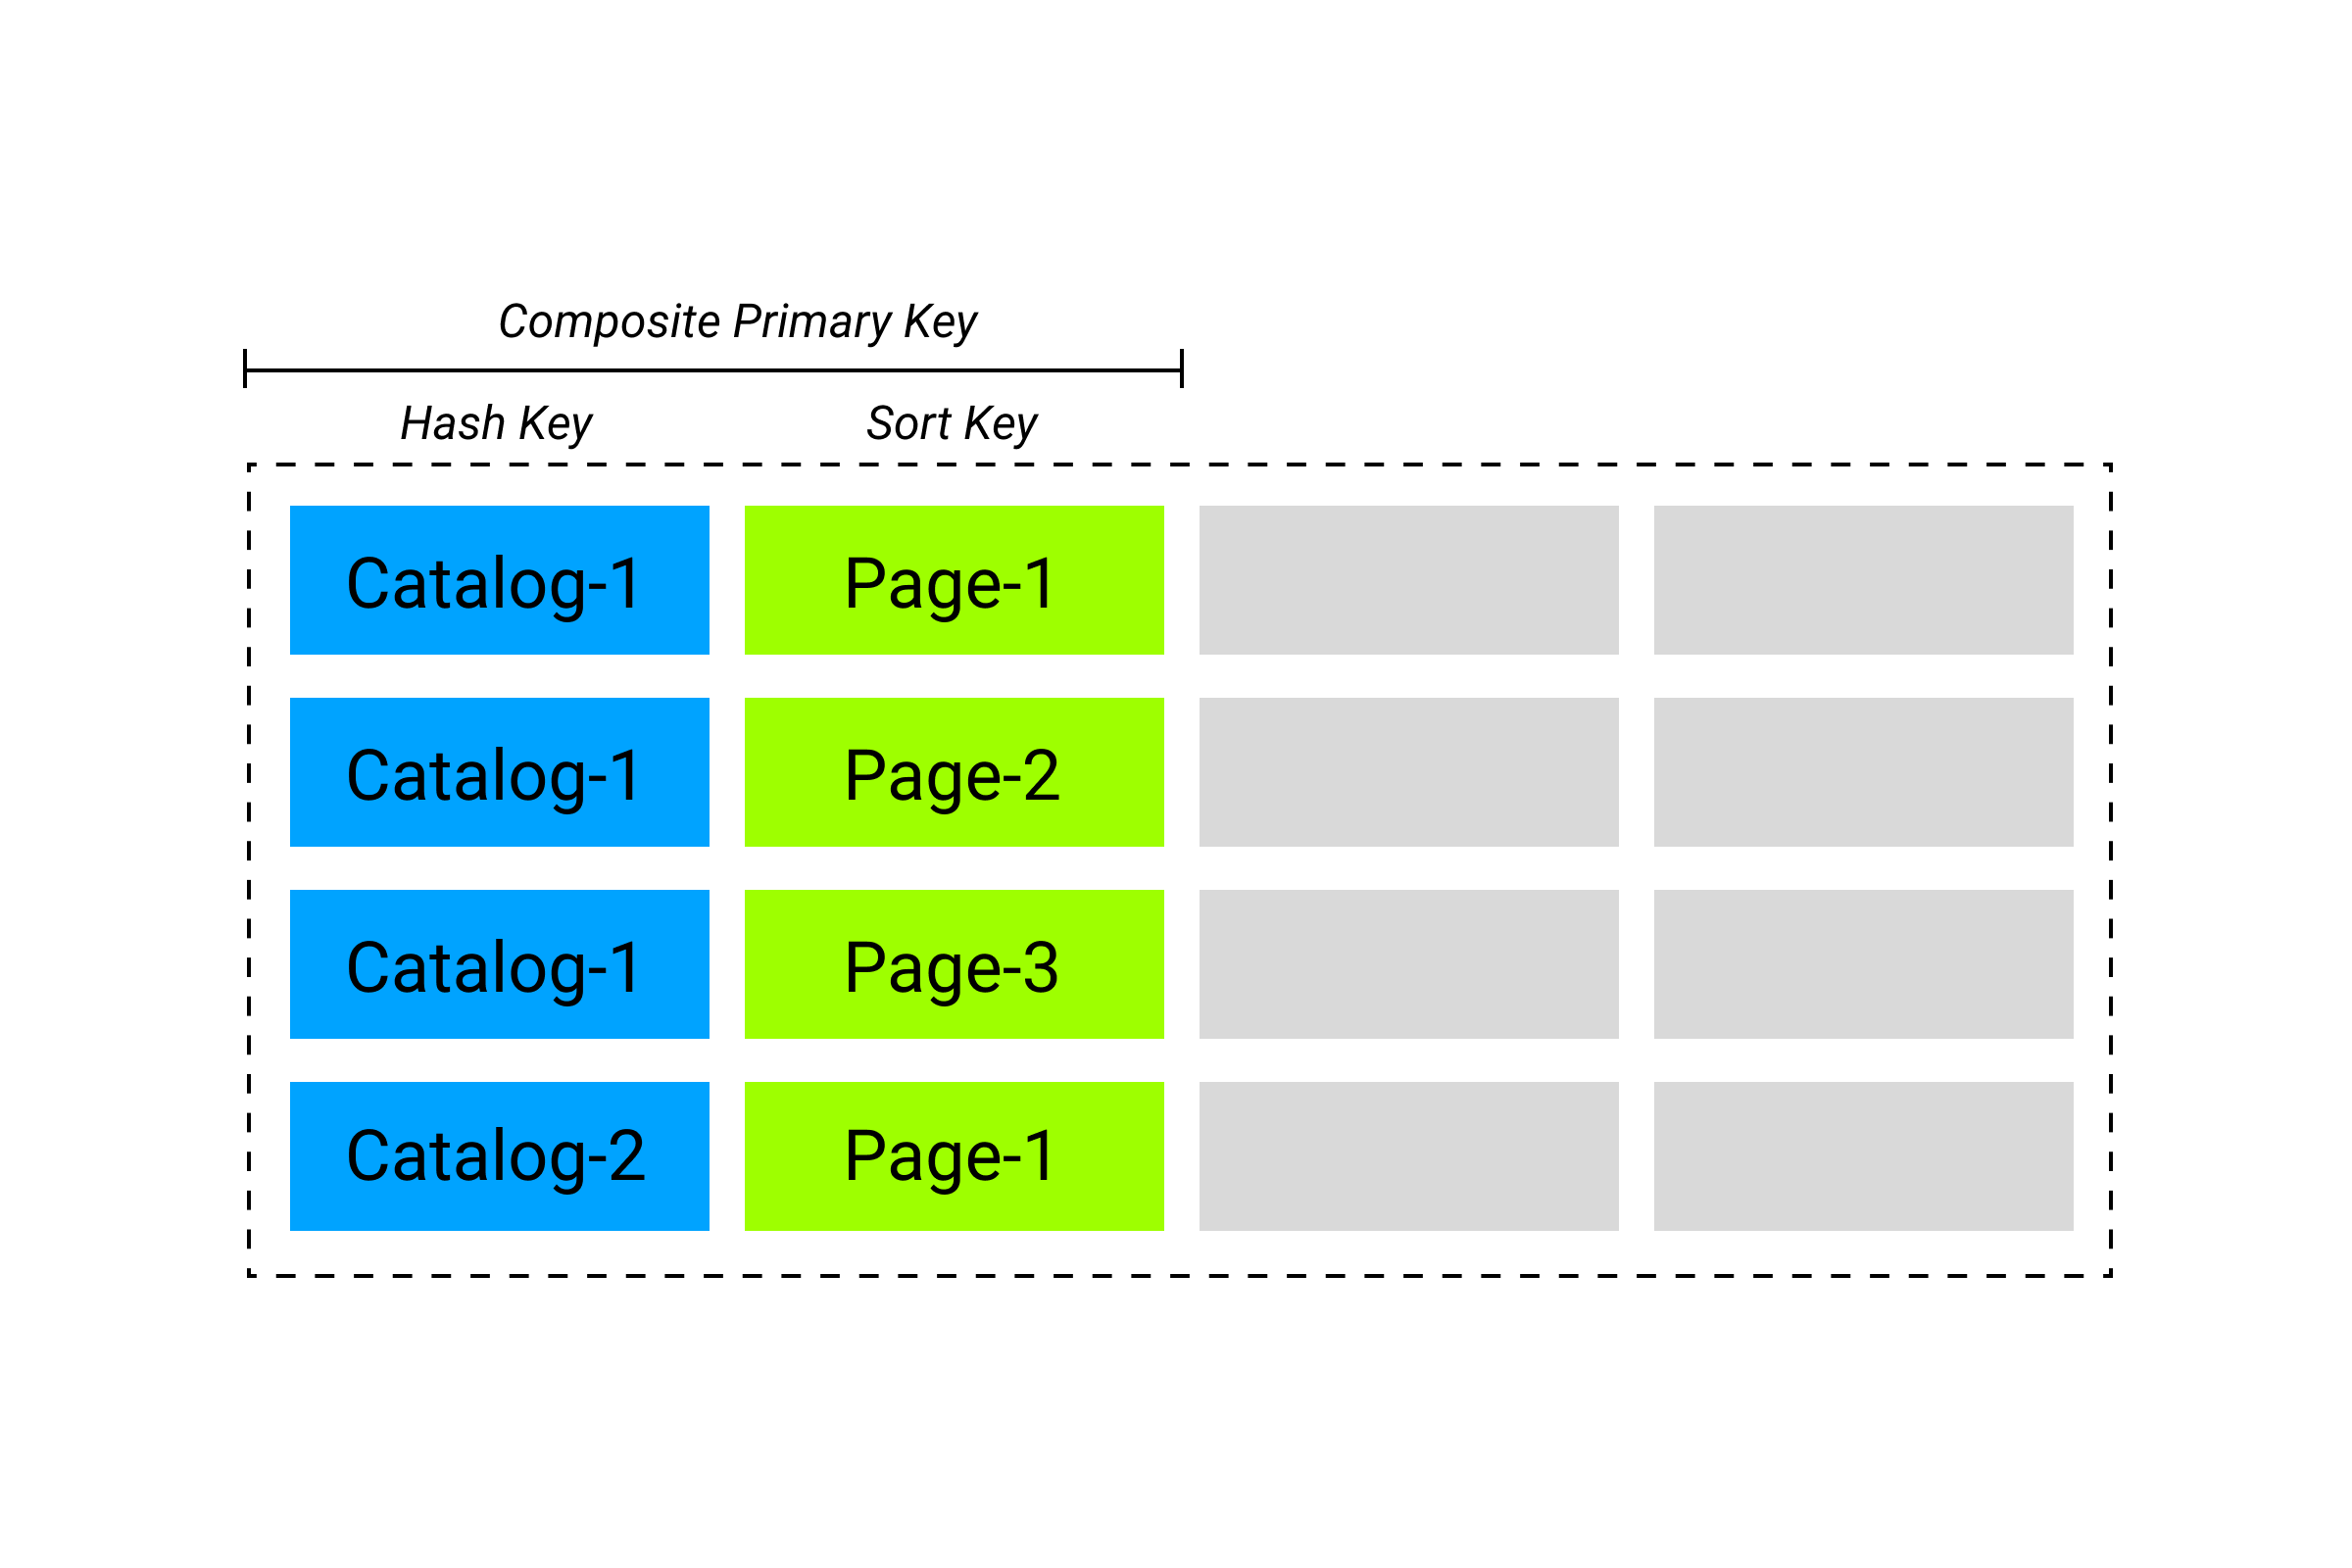 DynamoDB Table with composite key